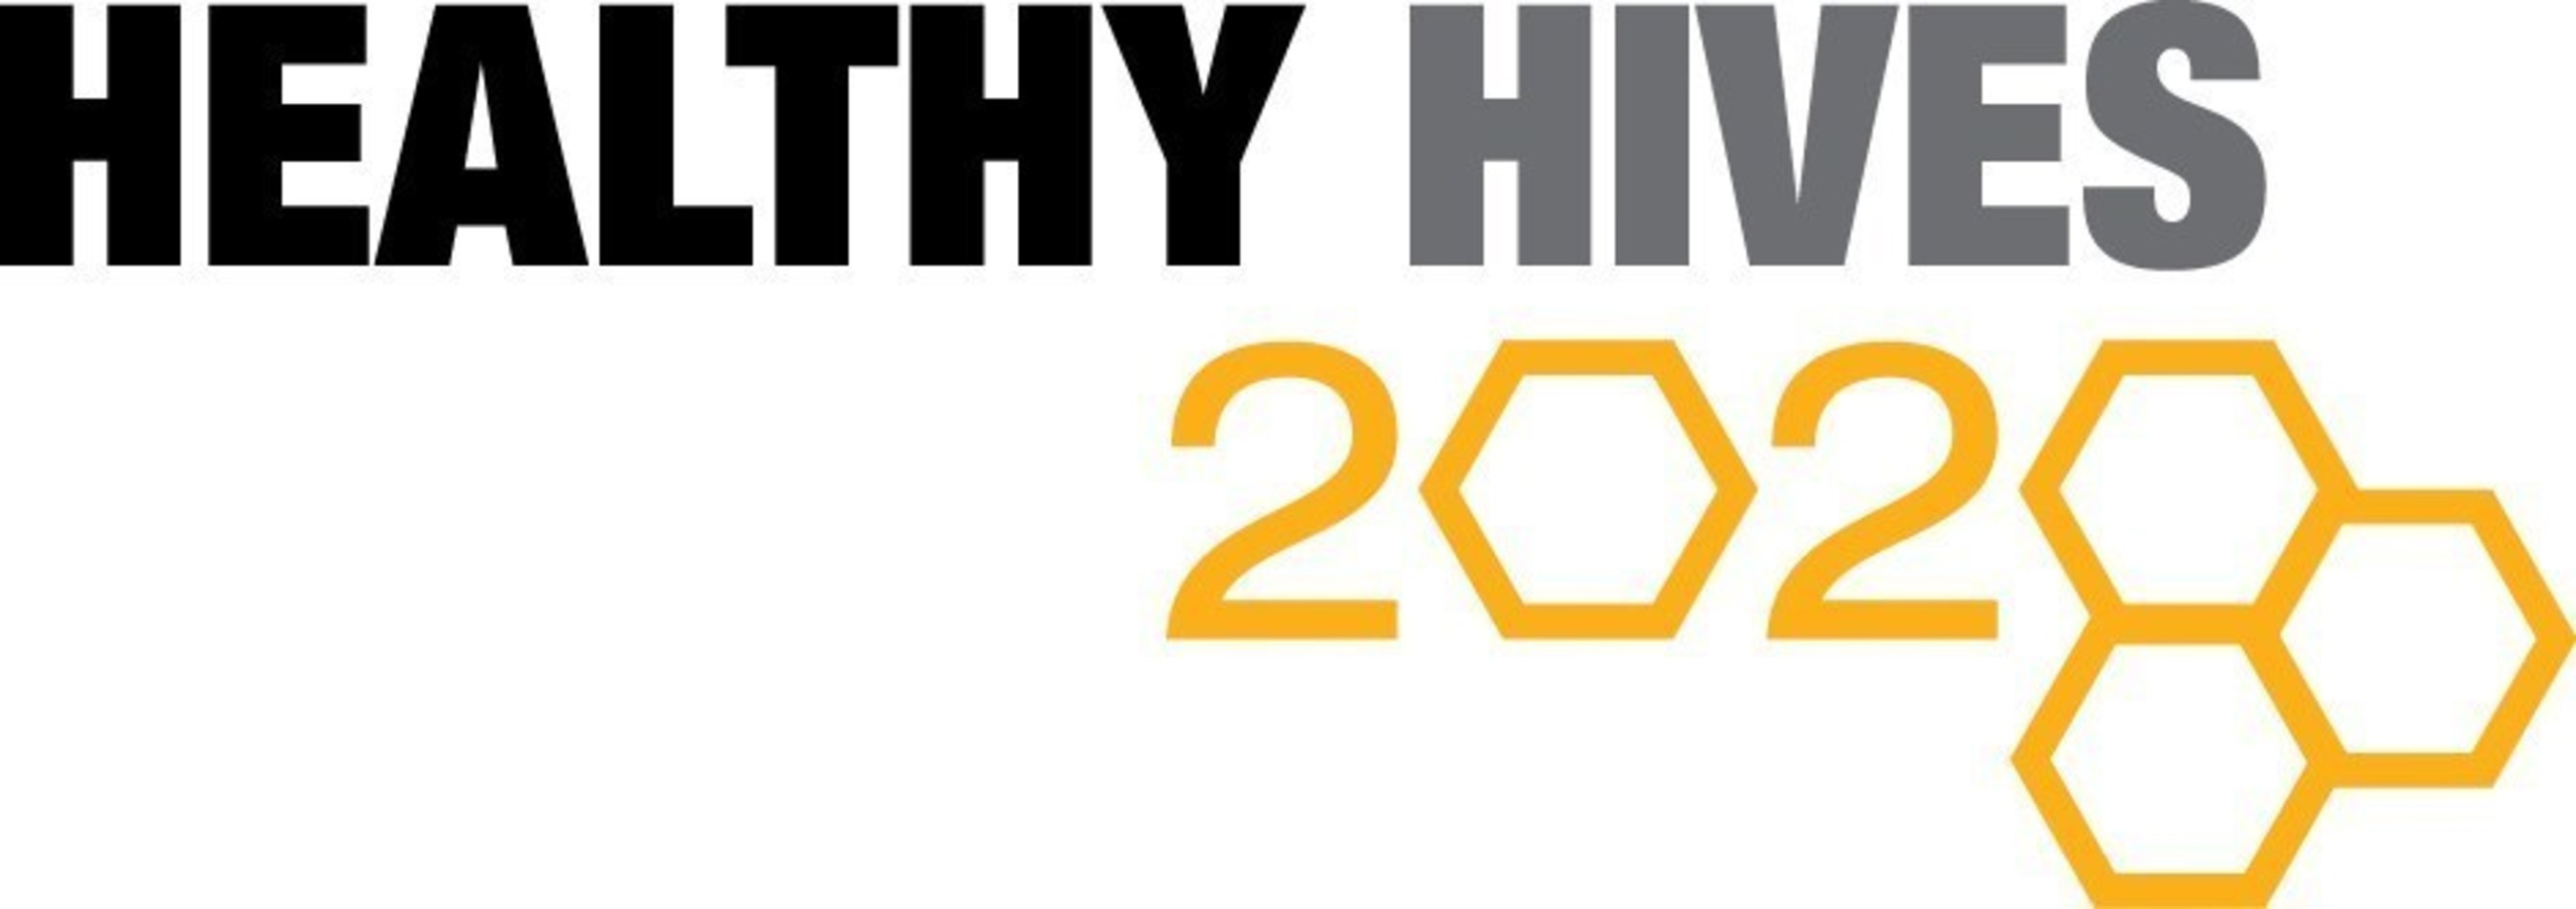 Healthy Hives 2020 is a Bayer CropScience initiative for improving the health of honey bee colonies in the U.S. by the year 2020.